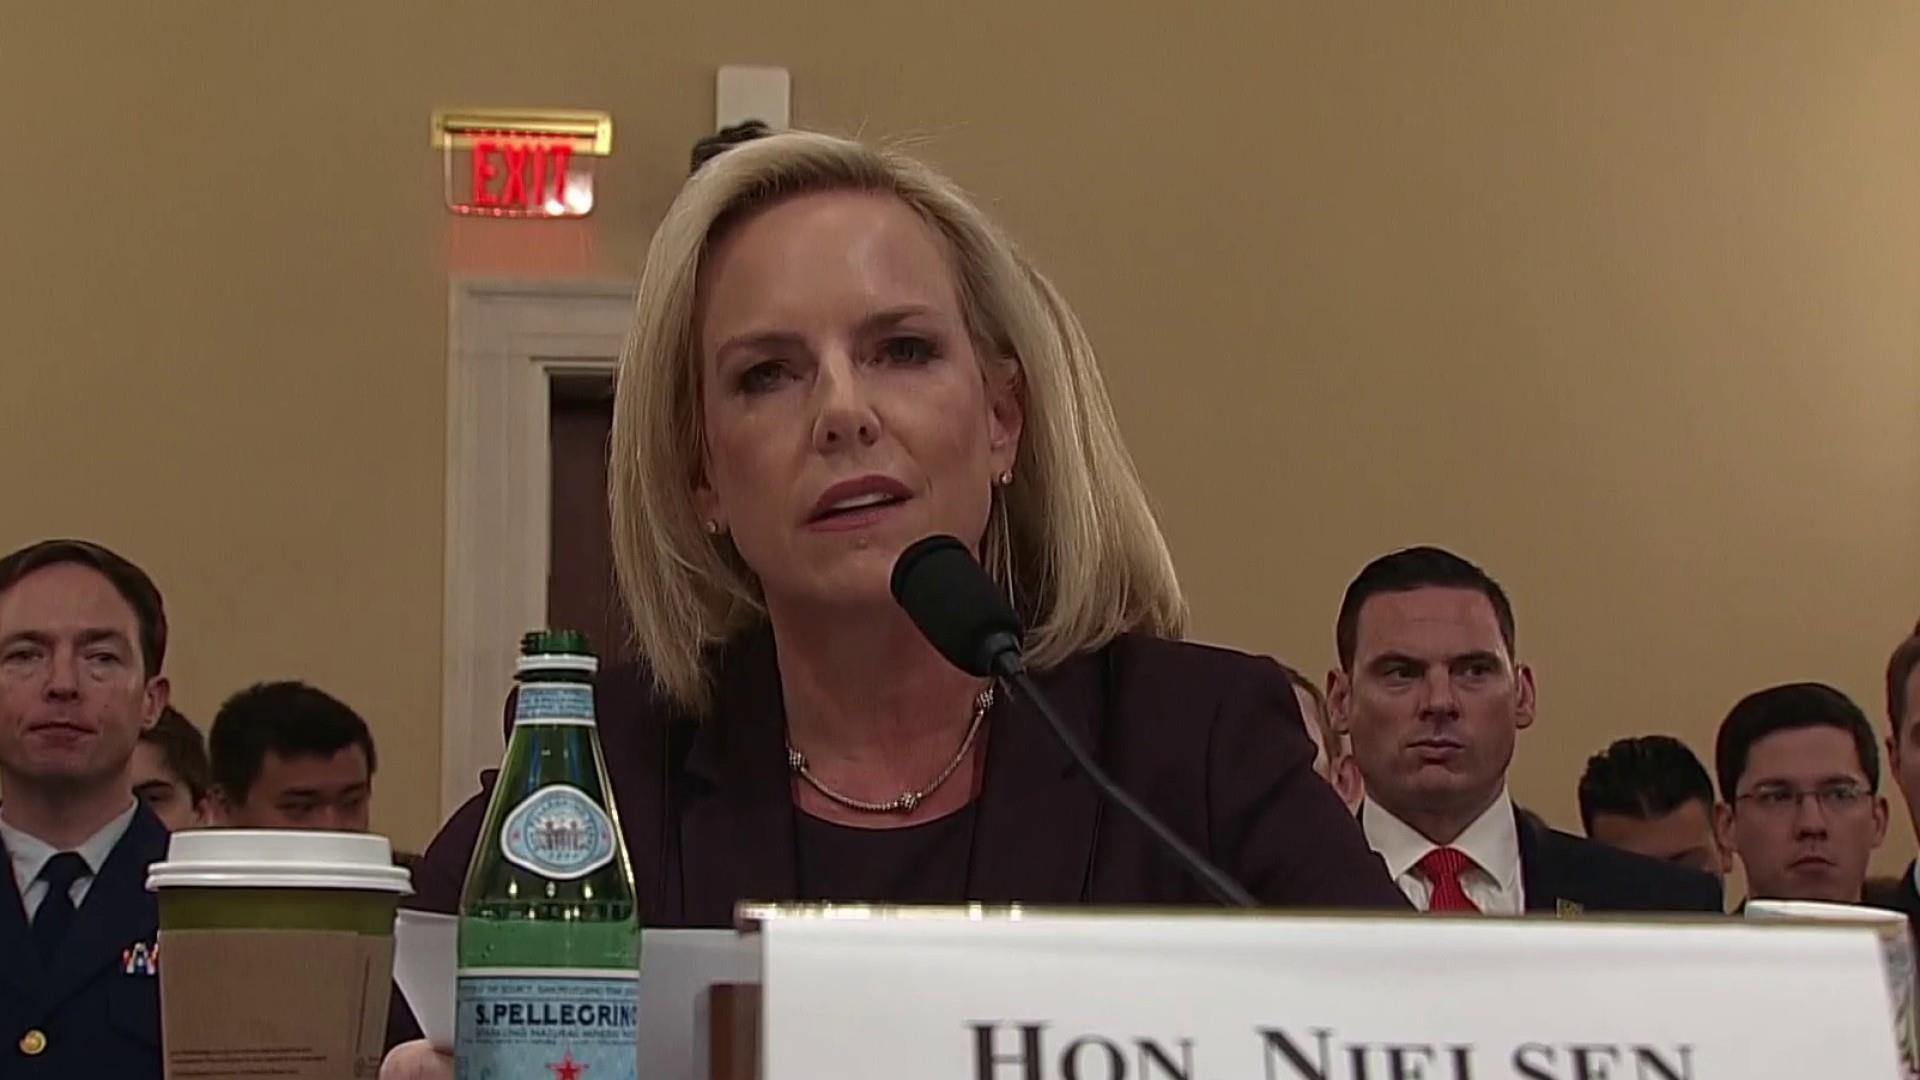 Nielsen evades even yes or no questions on the Hill